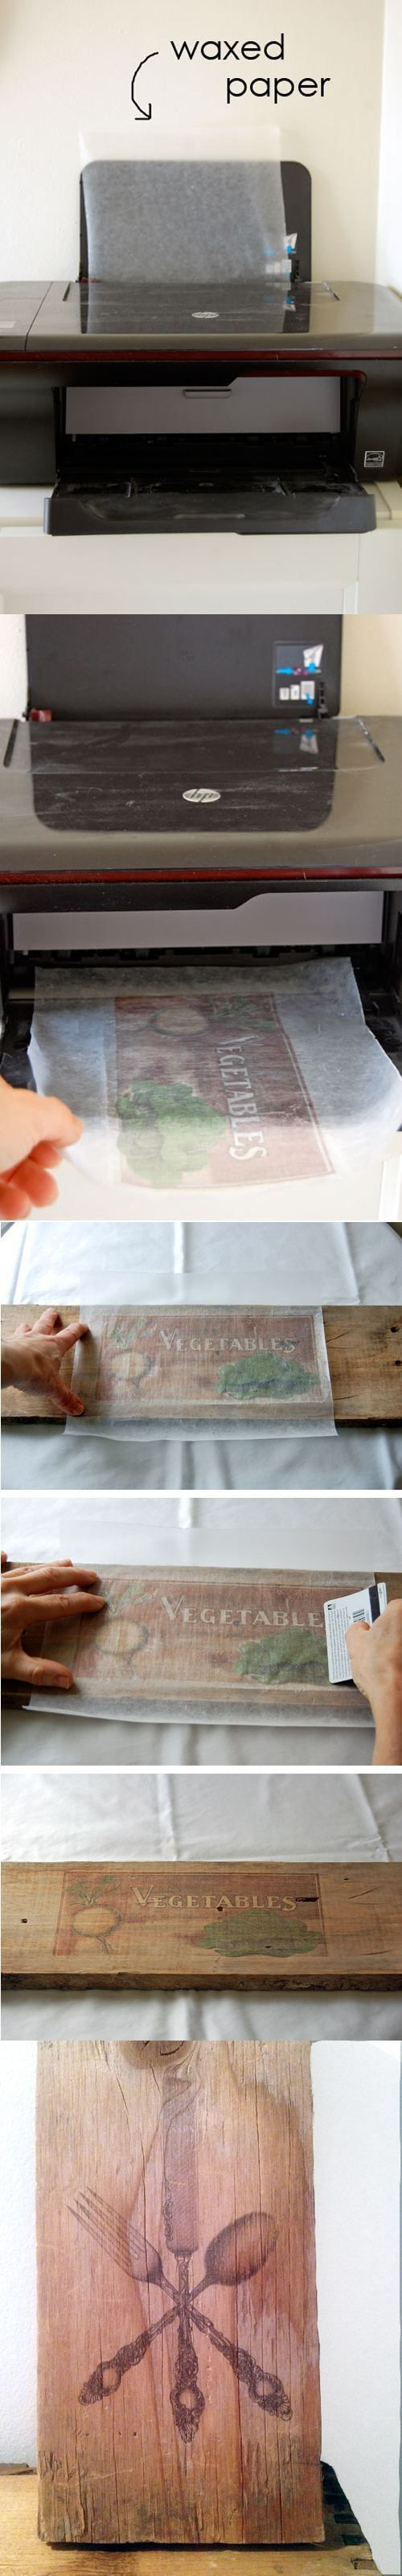 How to transfer any photograph or picture onto wood using only a printer and wax paper!